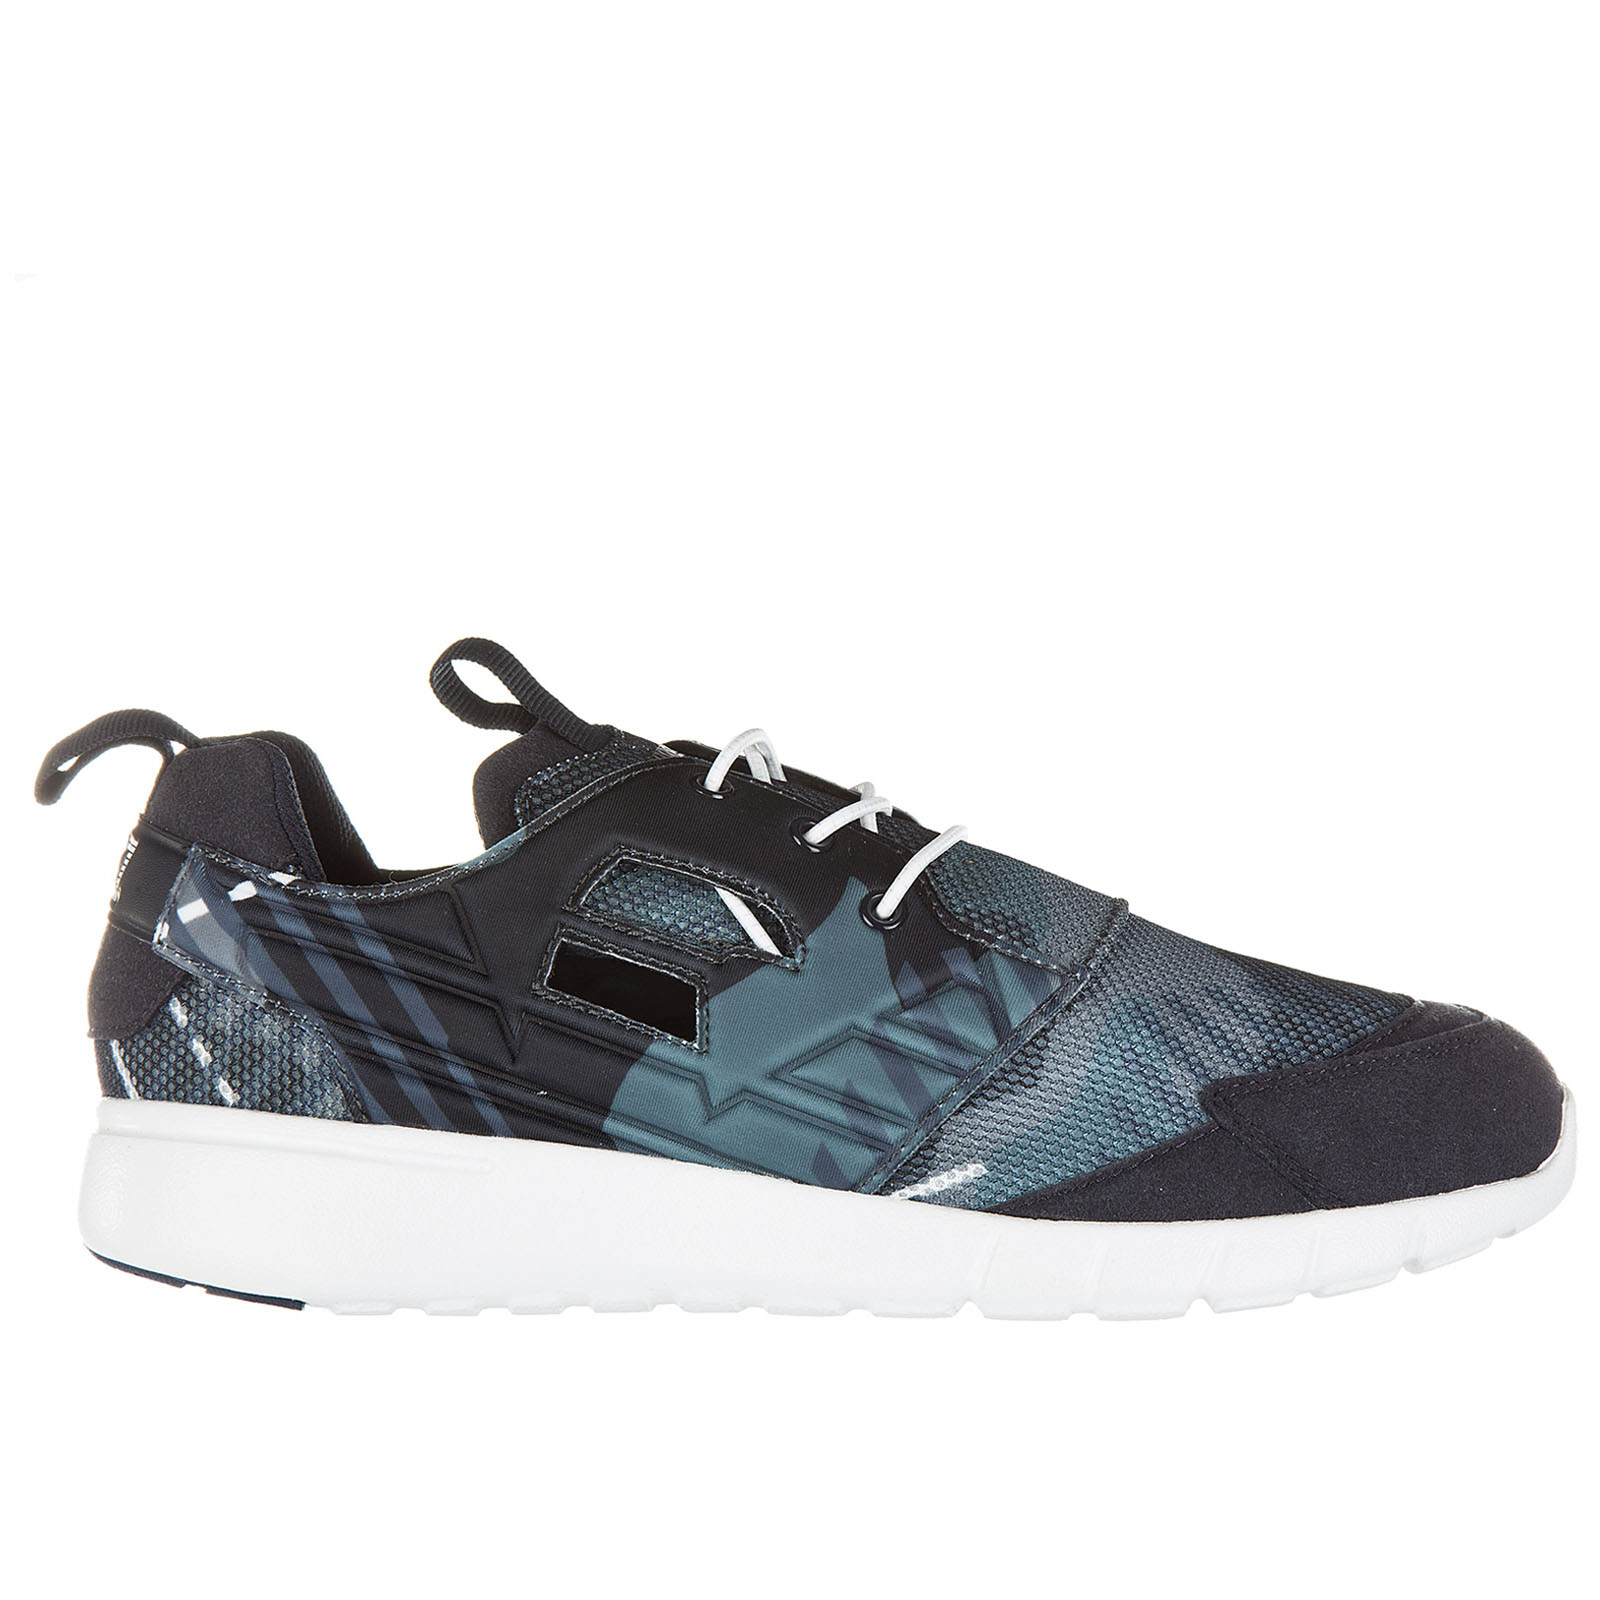 Chaussures baskets sneakers homme  racer light